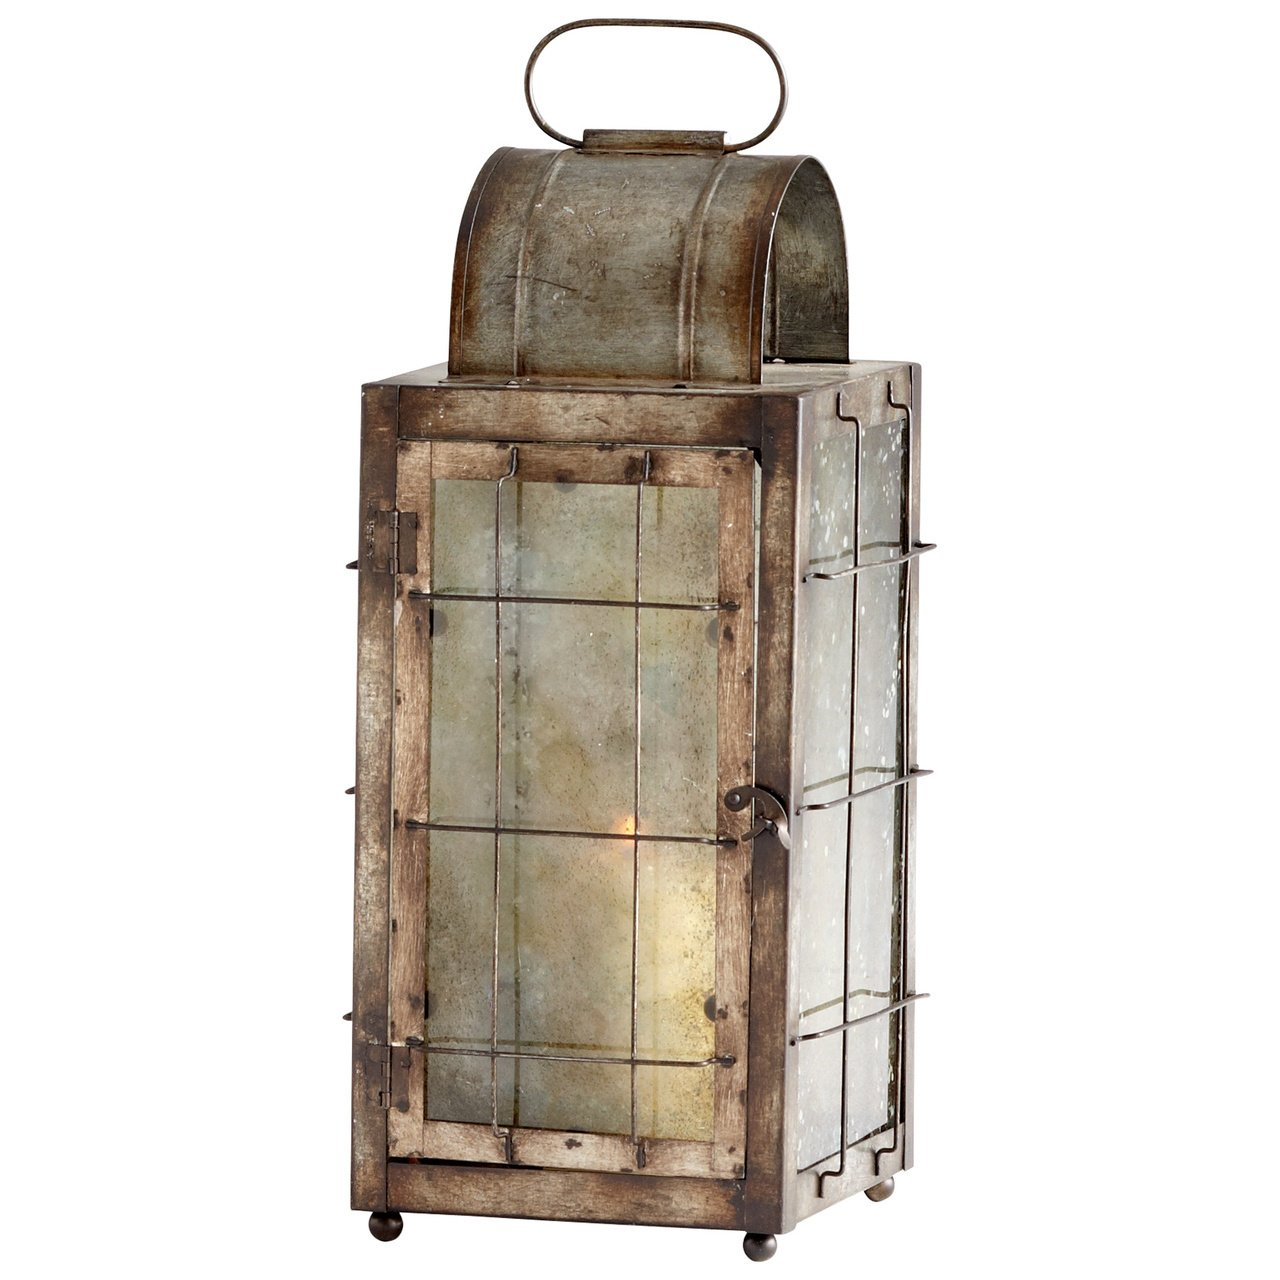 Cyan Design 05320 Old Timer Iron & Glass Lantern for Home, Office, or Spa, Rustic